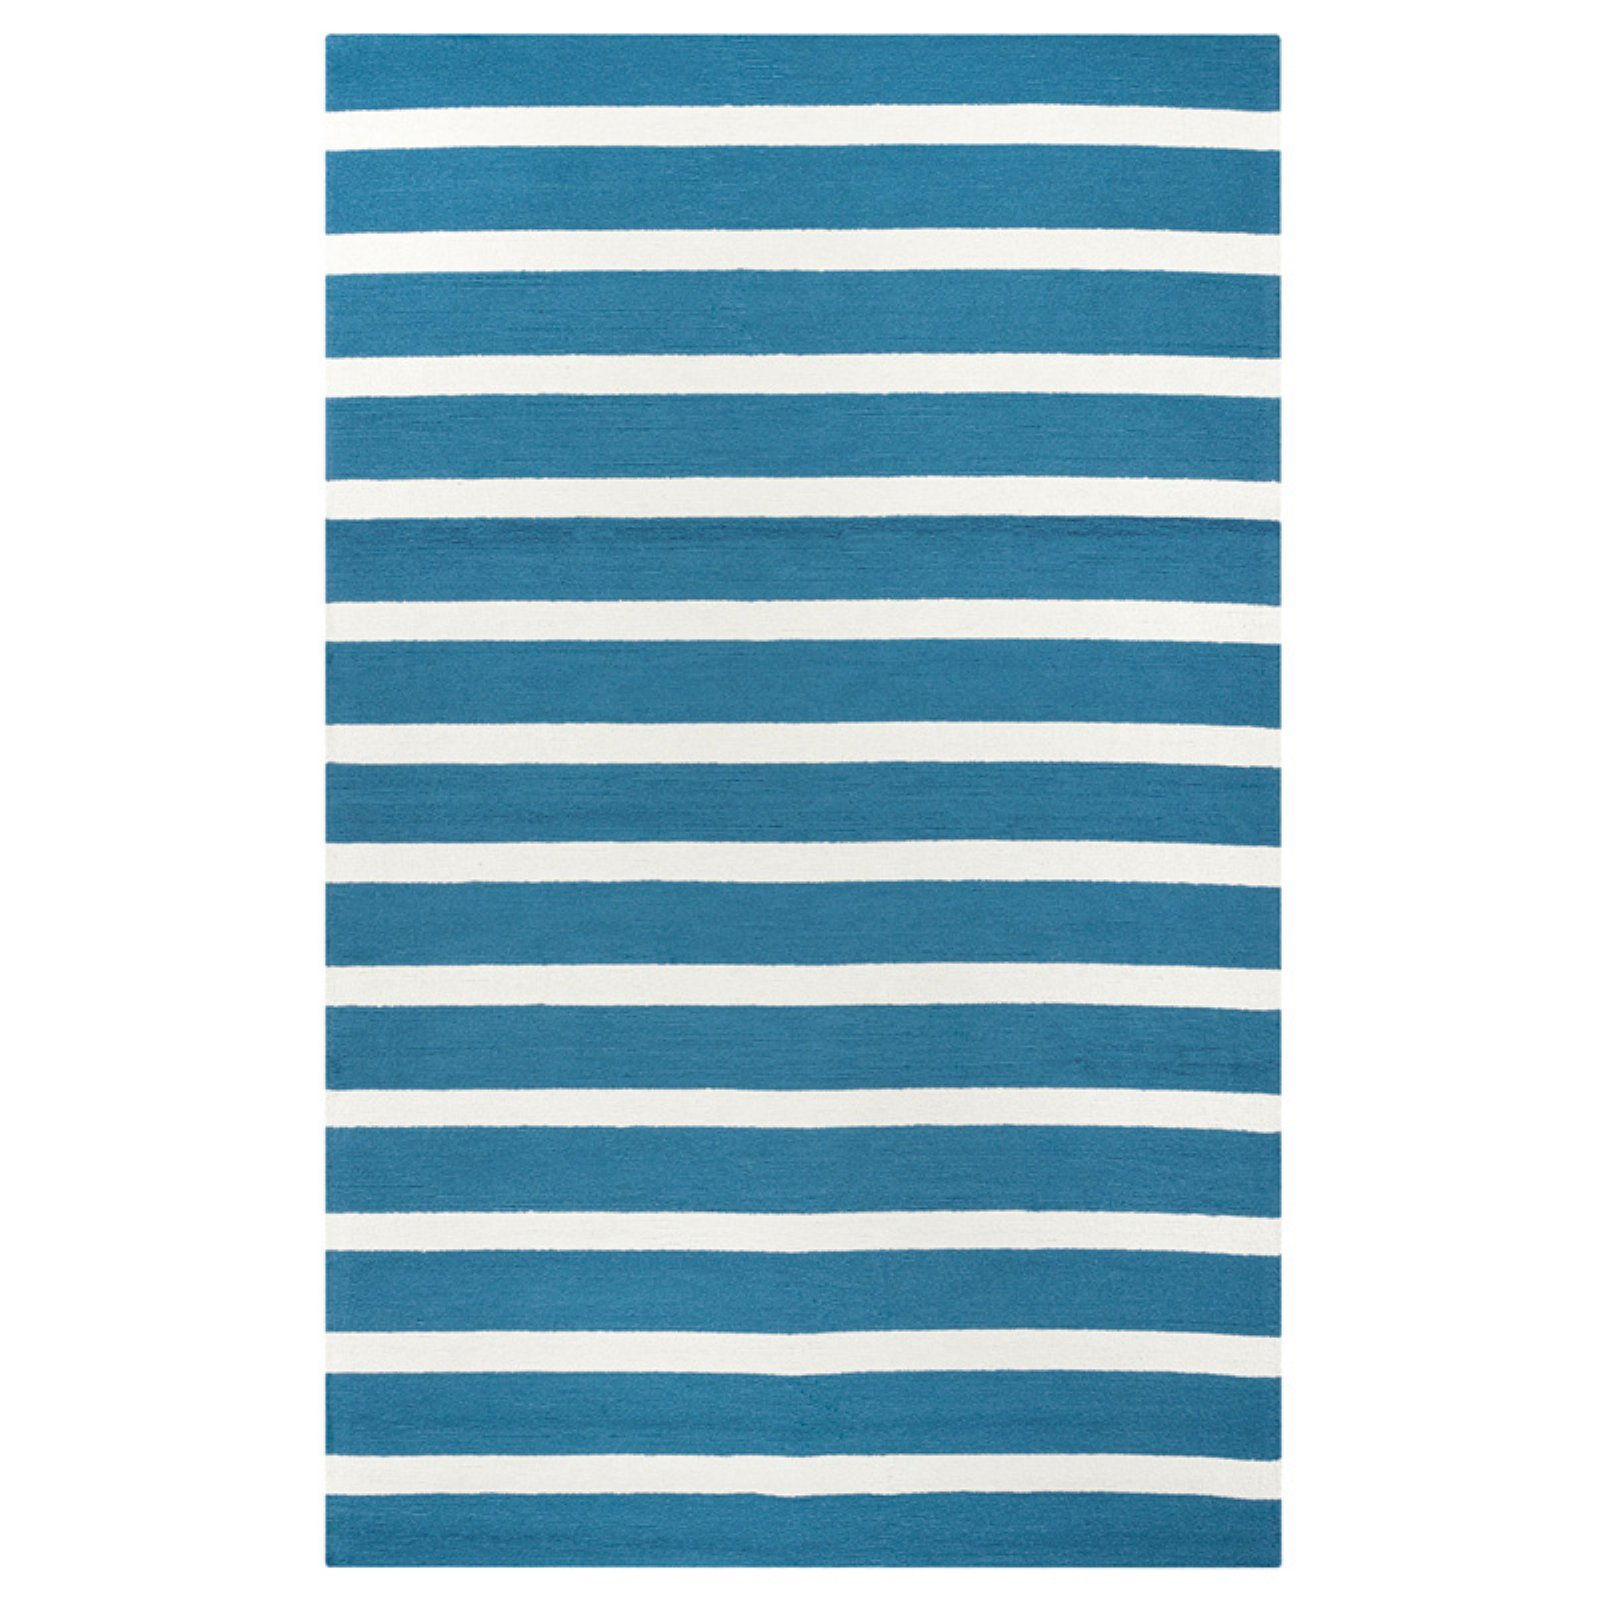 RIZZY HOME AZZURA HILL COLLECTIONS AH9944 2' x 3' AREA RUGS